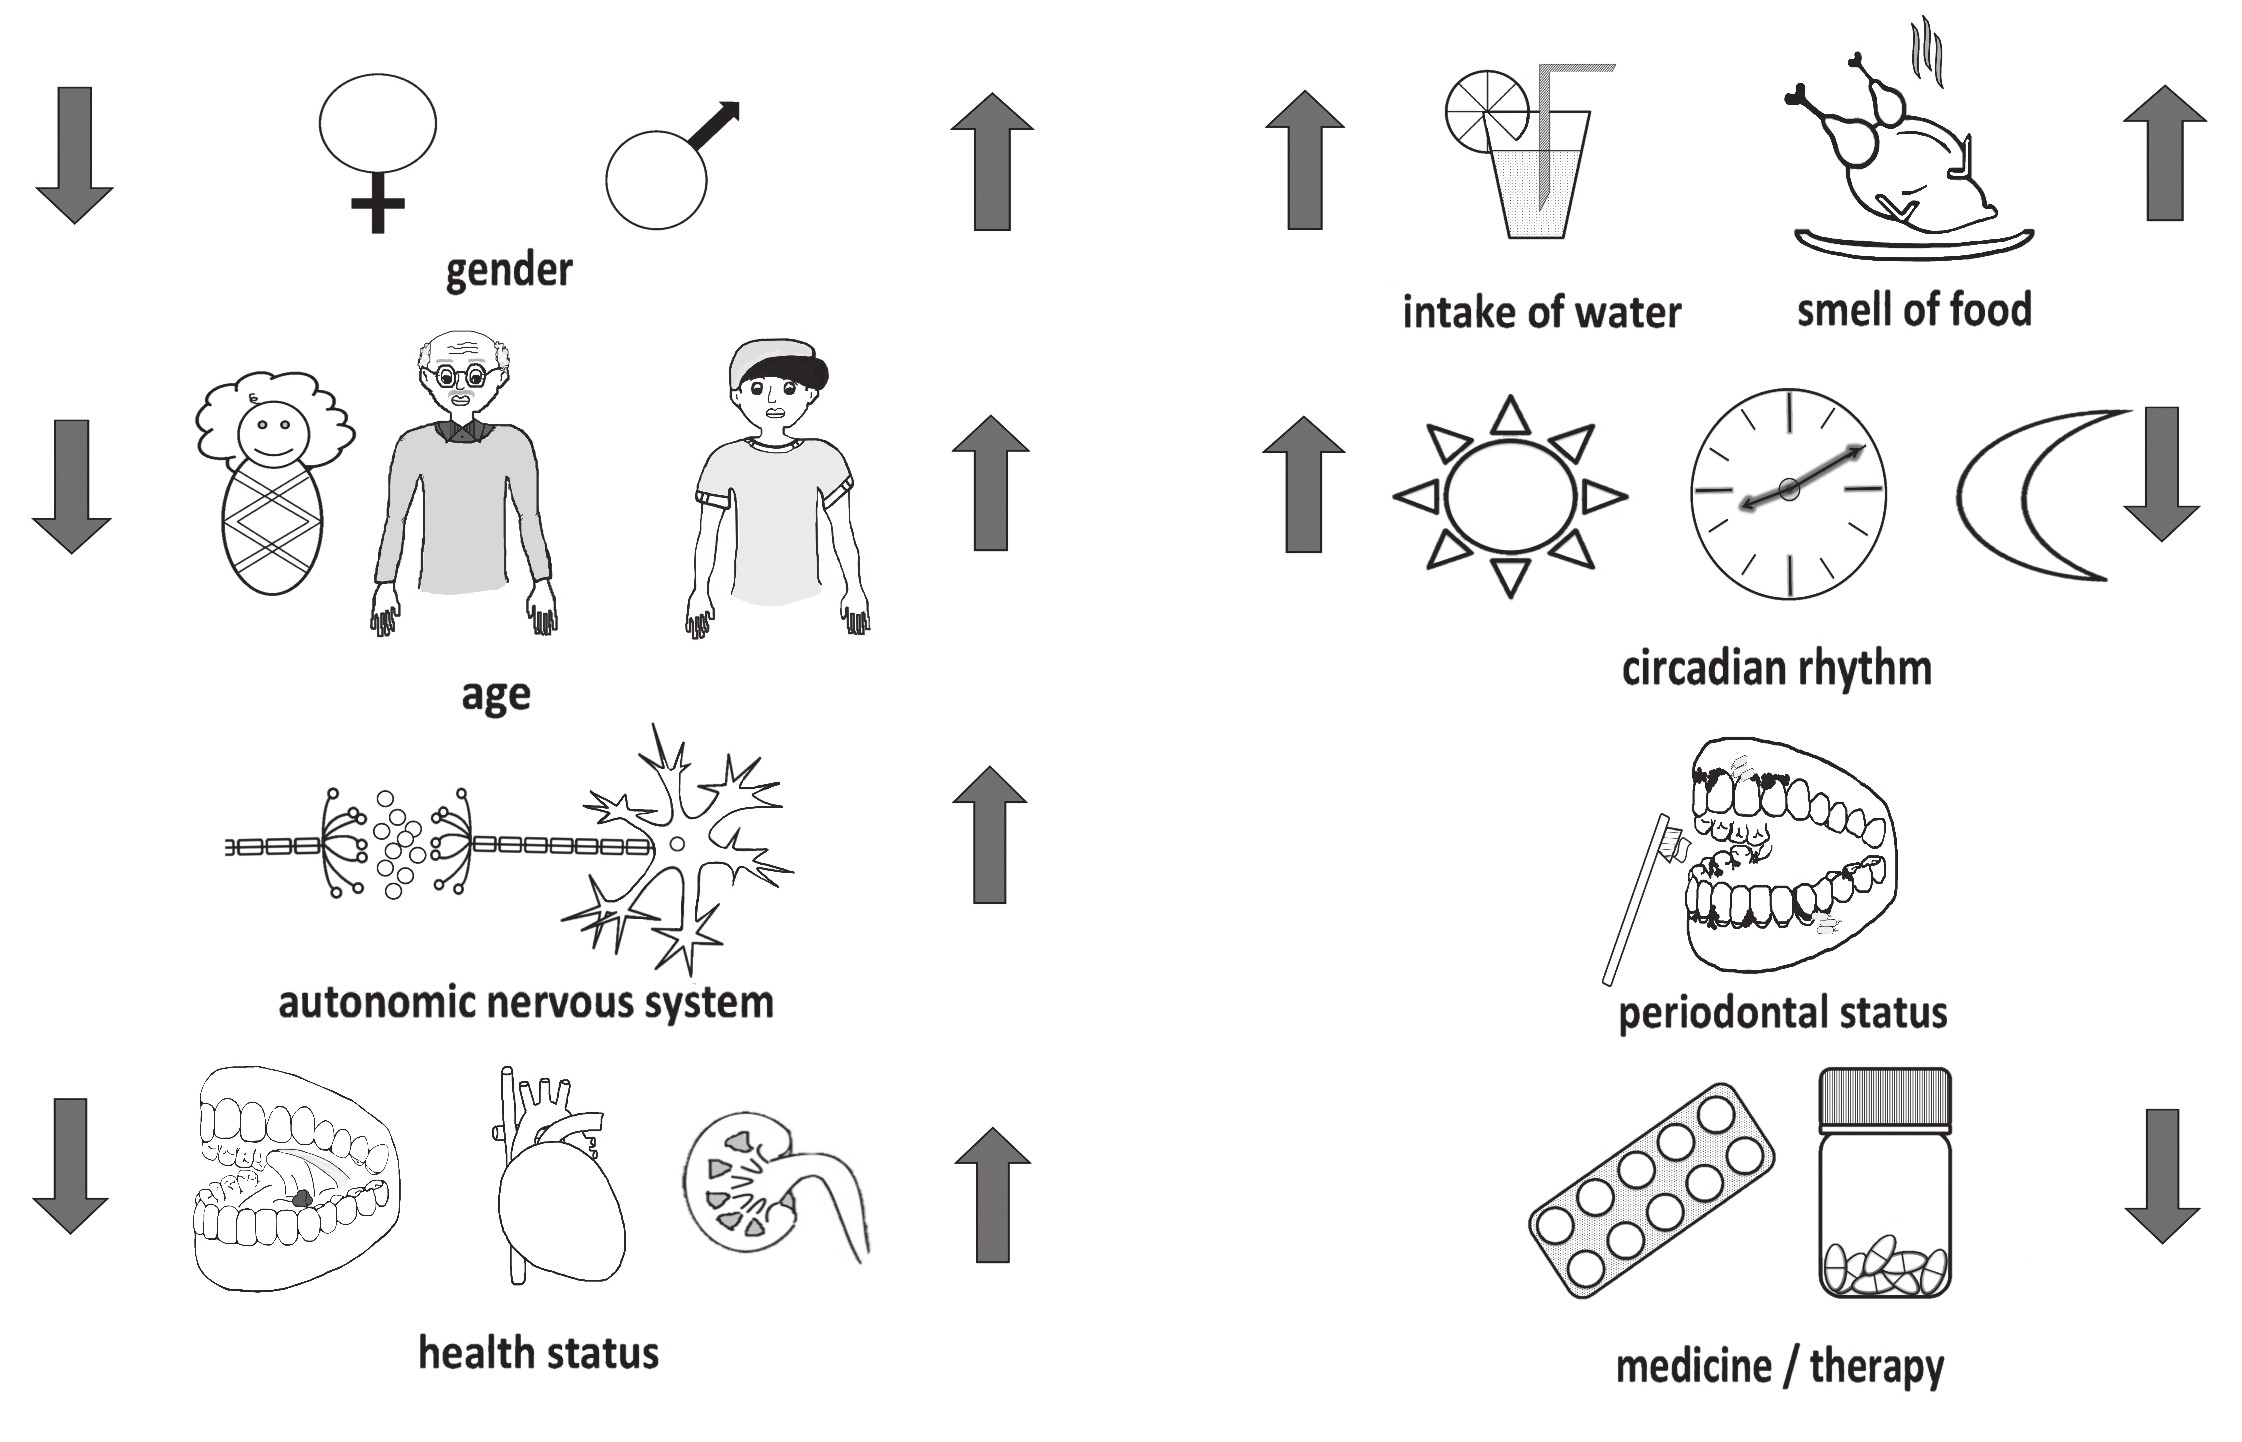 Factors influencing the production of saliva include e.g. gender, age, autonomous nerve system, circadian rhythm, water intake, sensoric stimuli, oral and systemic health status, and medication and cure